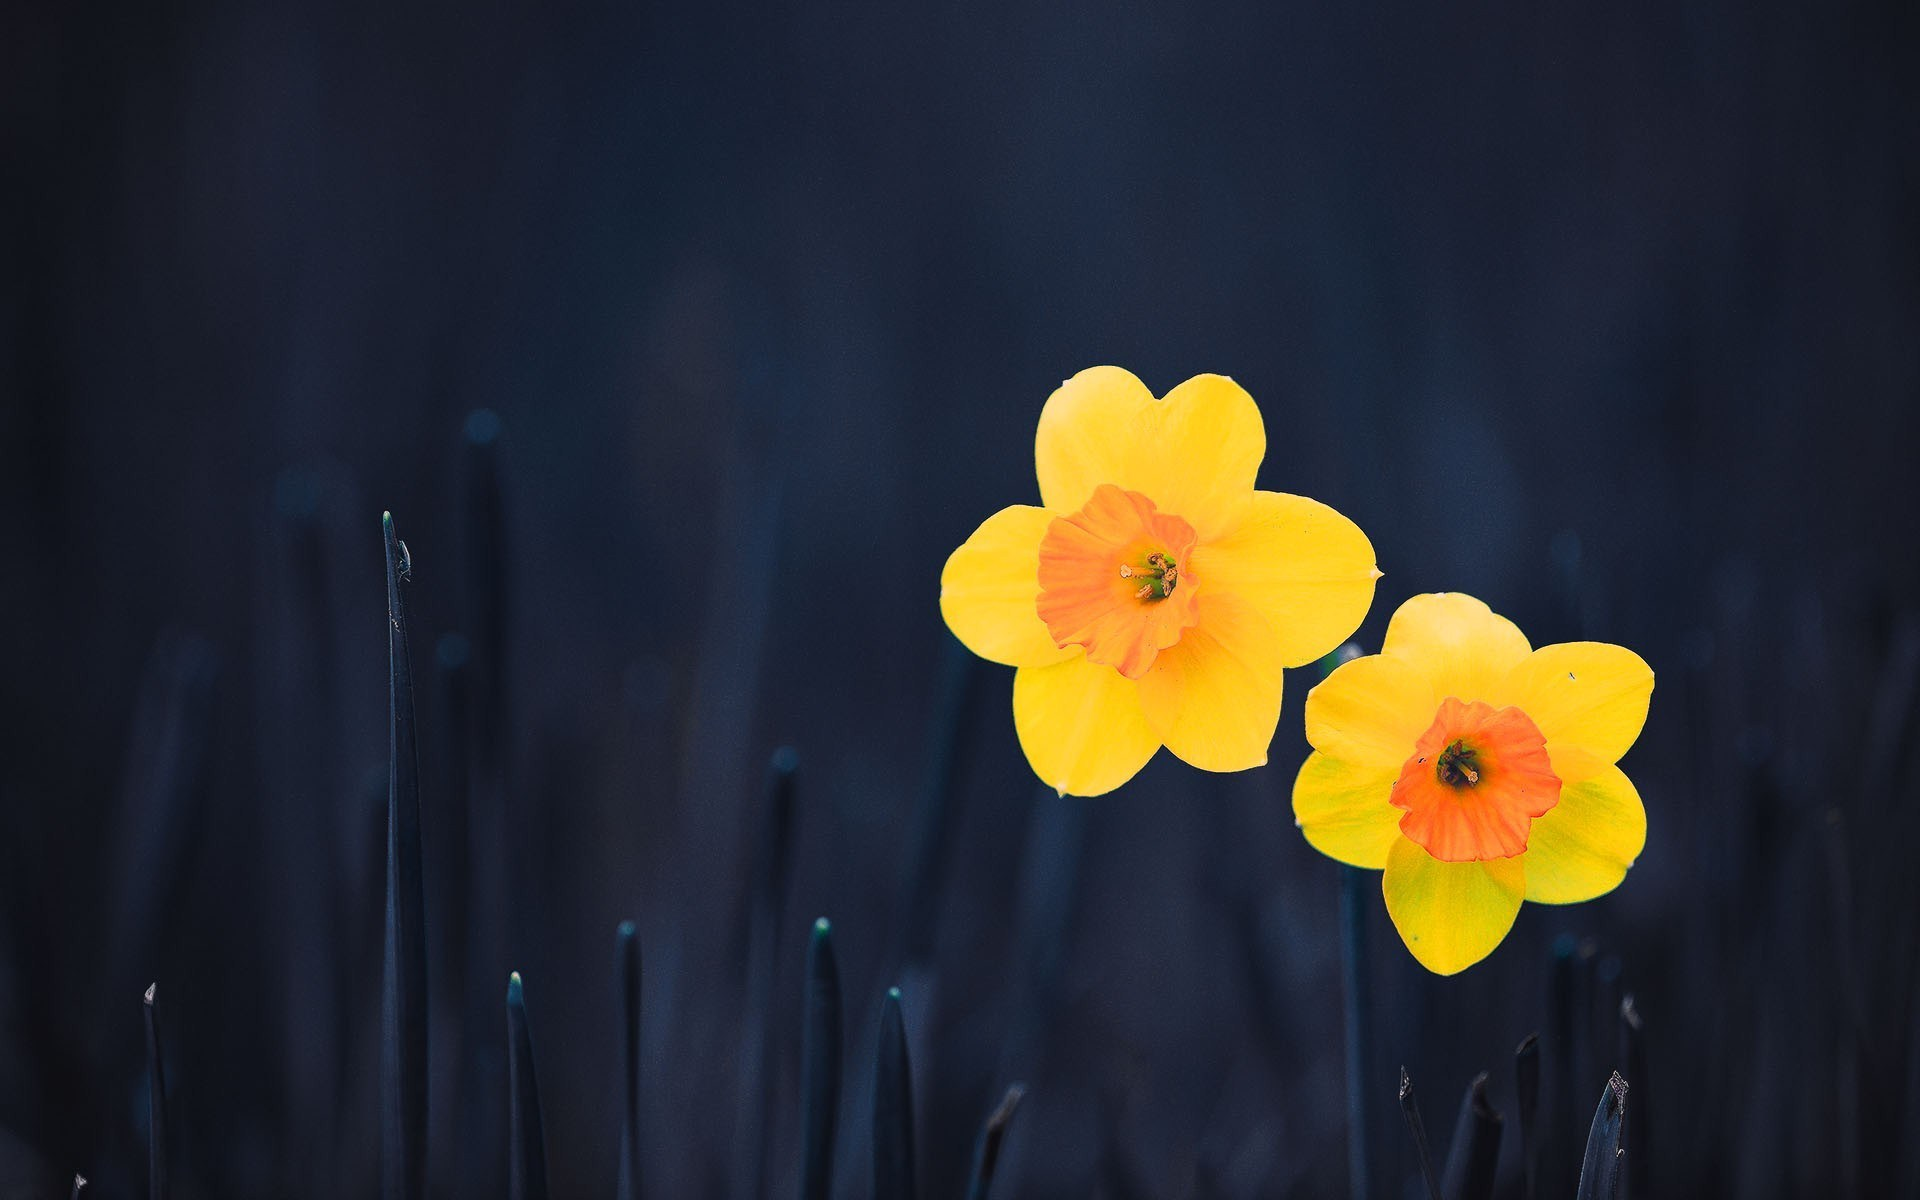 photos of daffodils